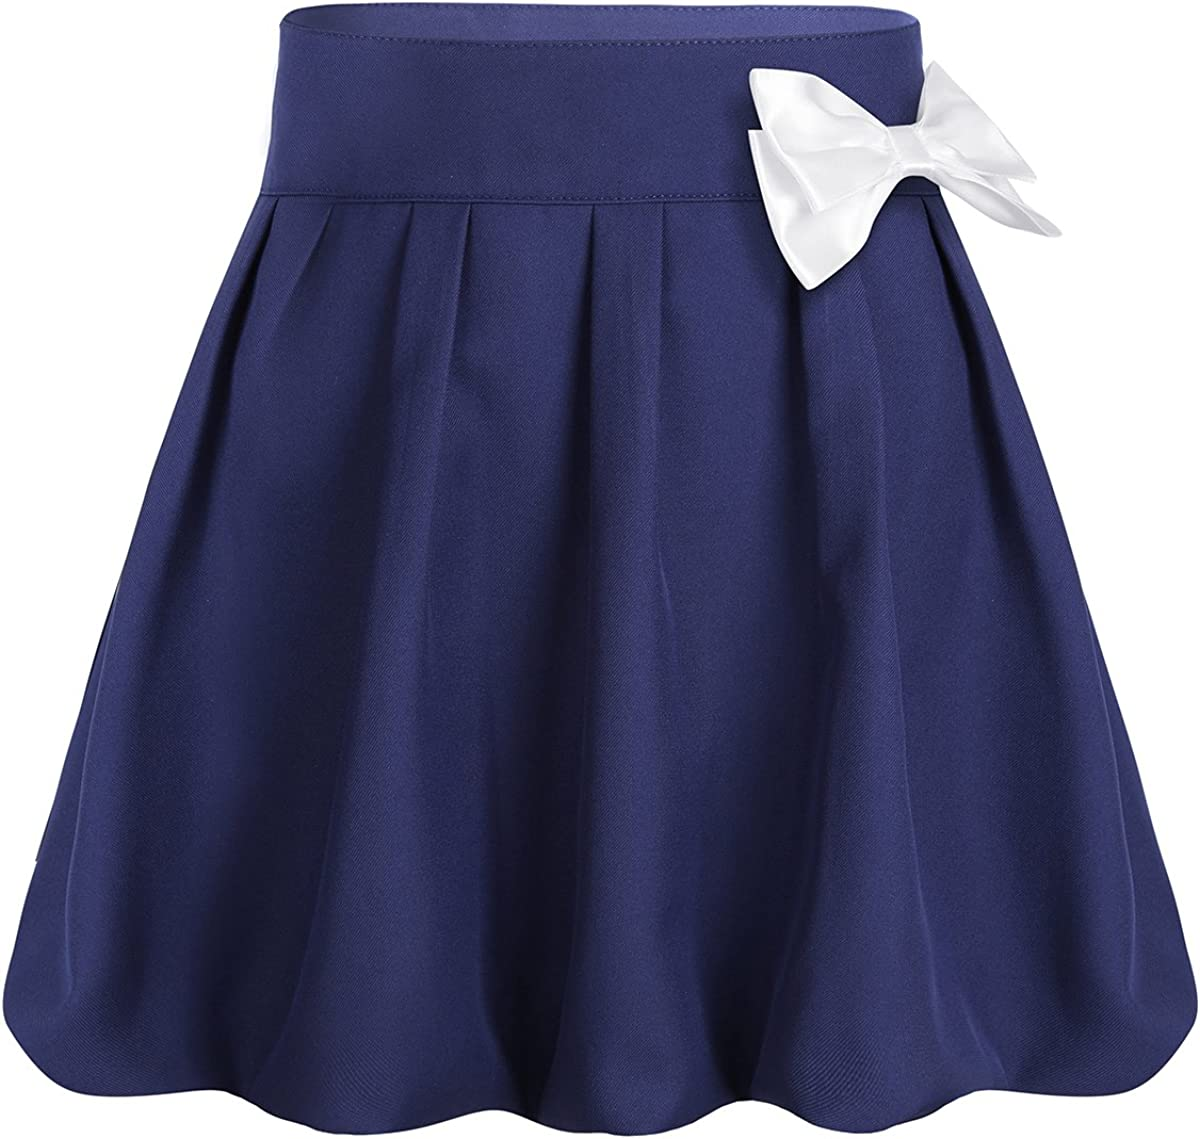 TiaoBug Kids Girls Pleated Scooter Skirt A-line Bowknot Skort with Hidden Shorts School Uniform Skirt